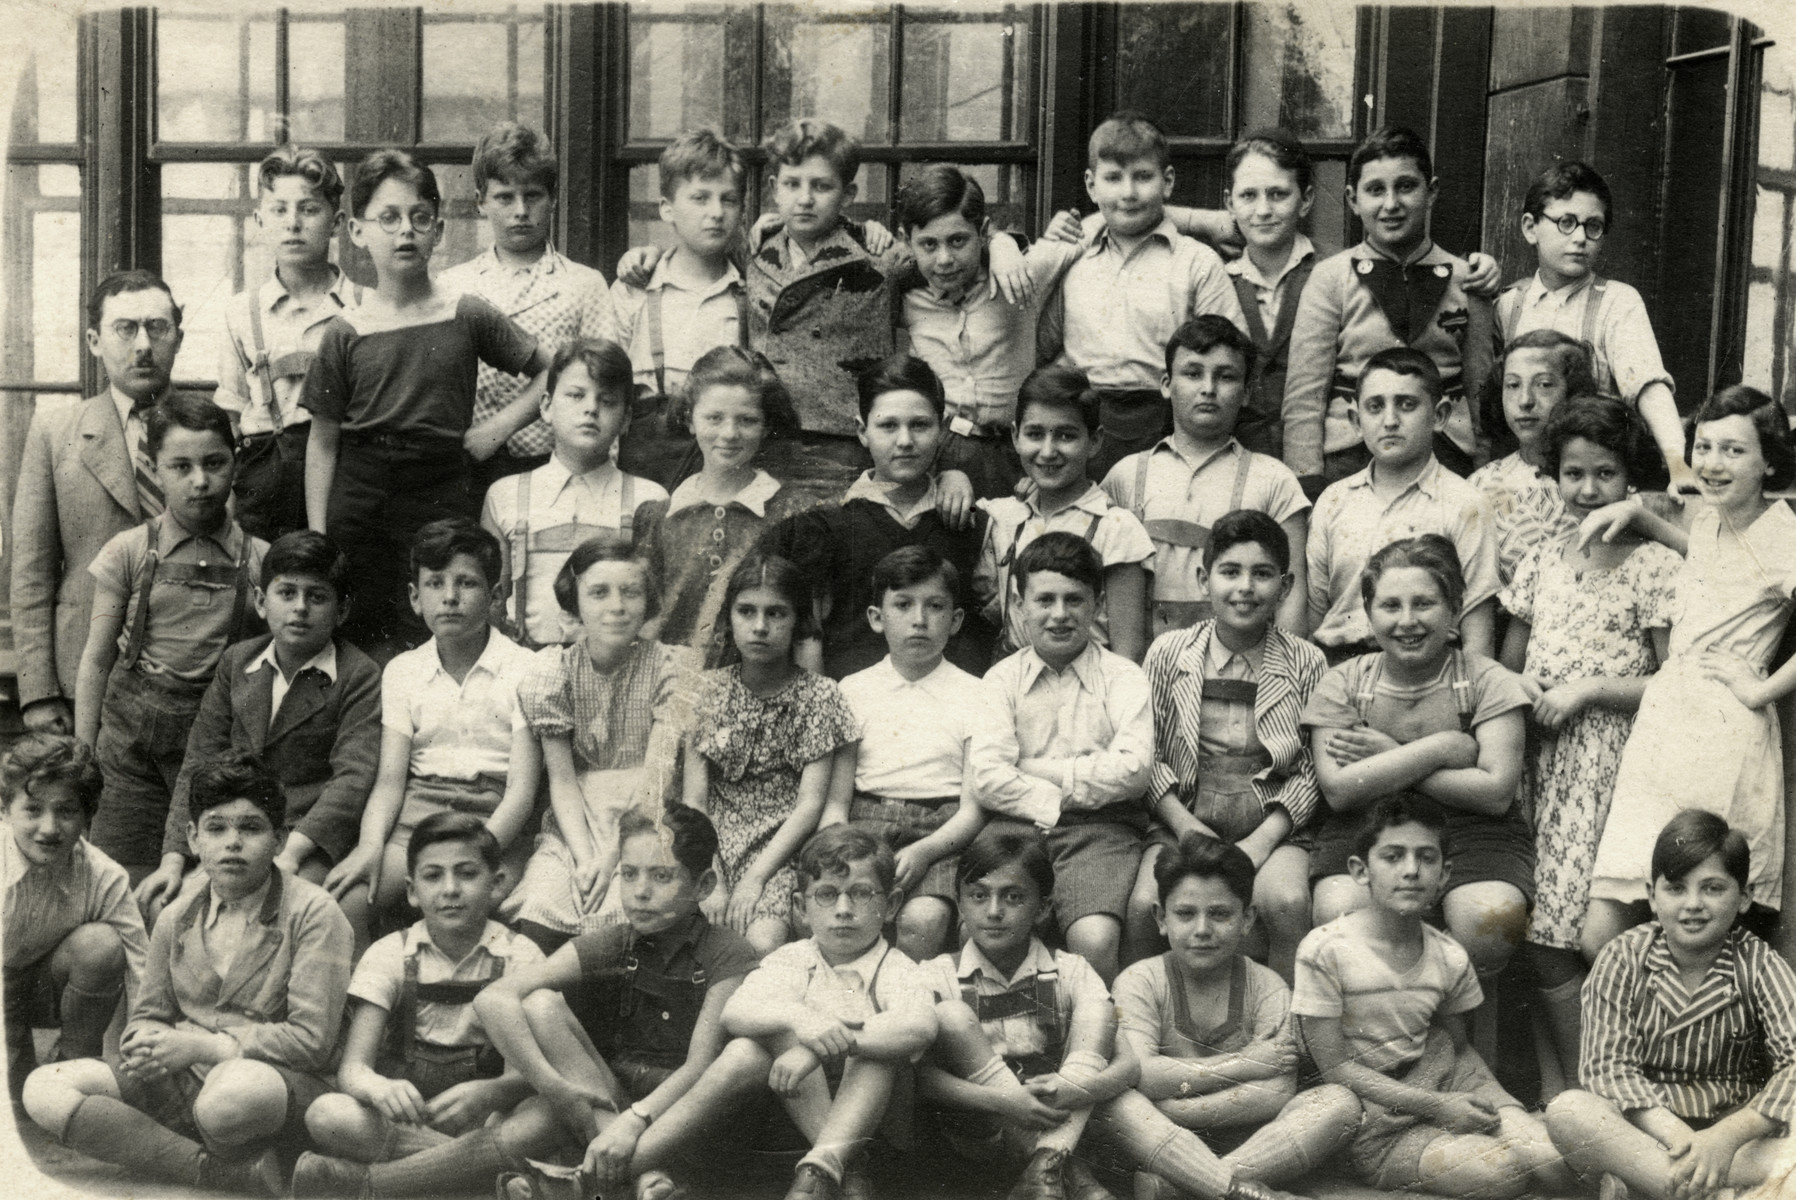 A group photograph of a class of the Chajes Realgymnasium in Vienna.   Gerda Beruh (age 10)  is standing on the far right in a white dress.